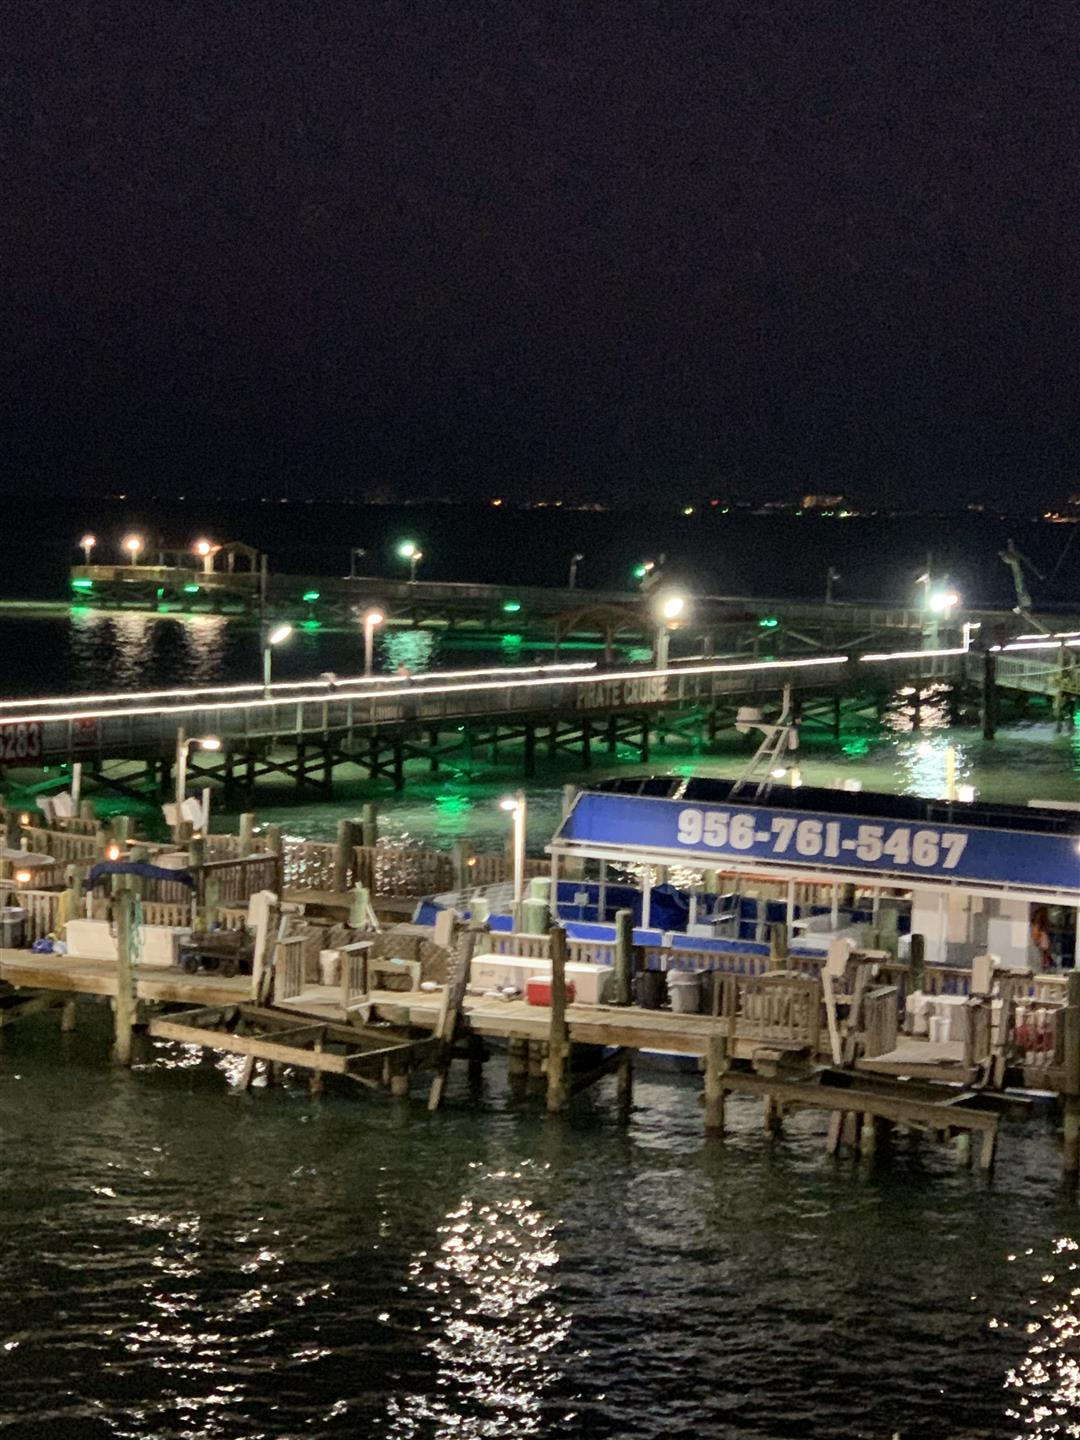 nighttime view of fishing boats docked at the pier